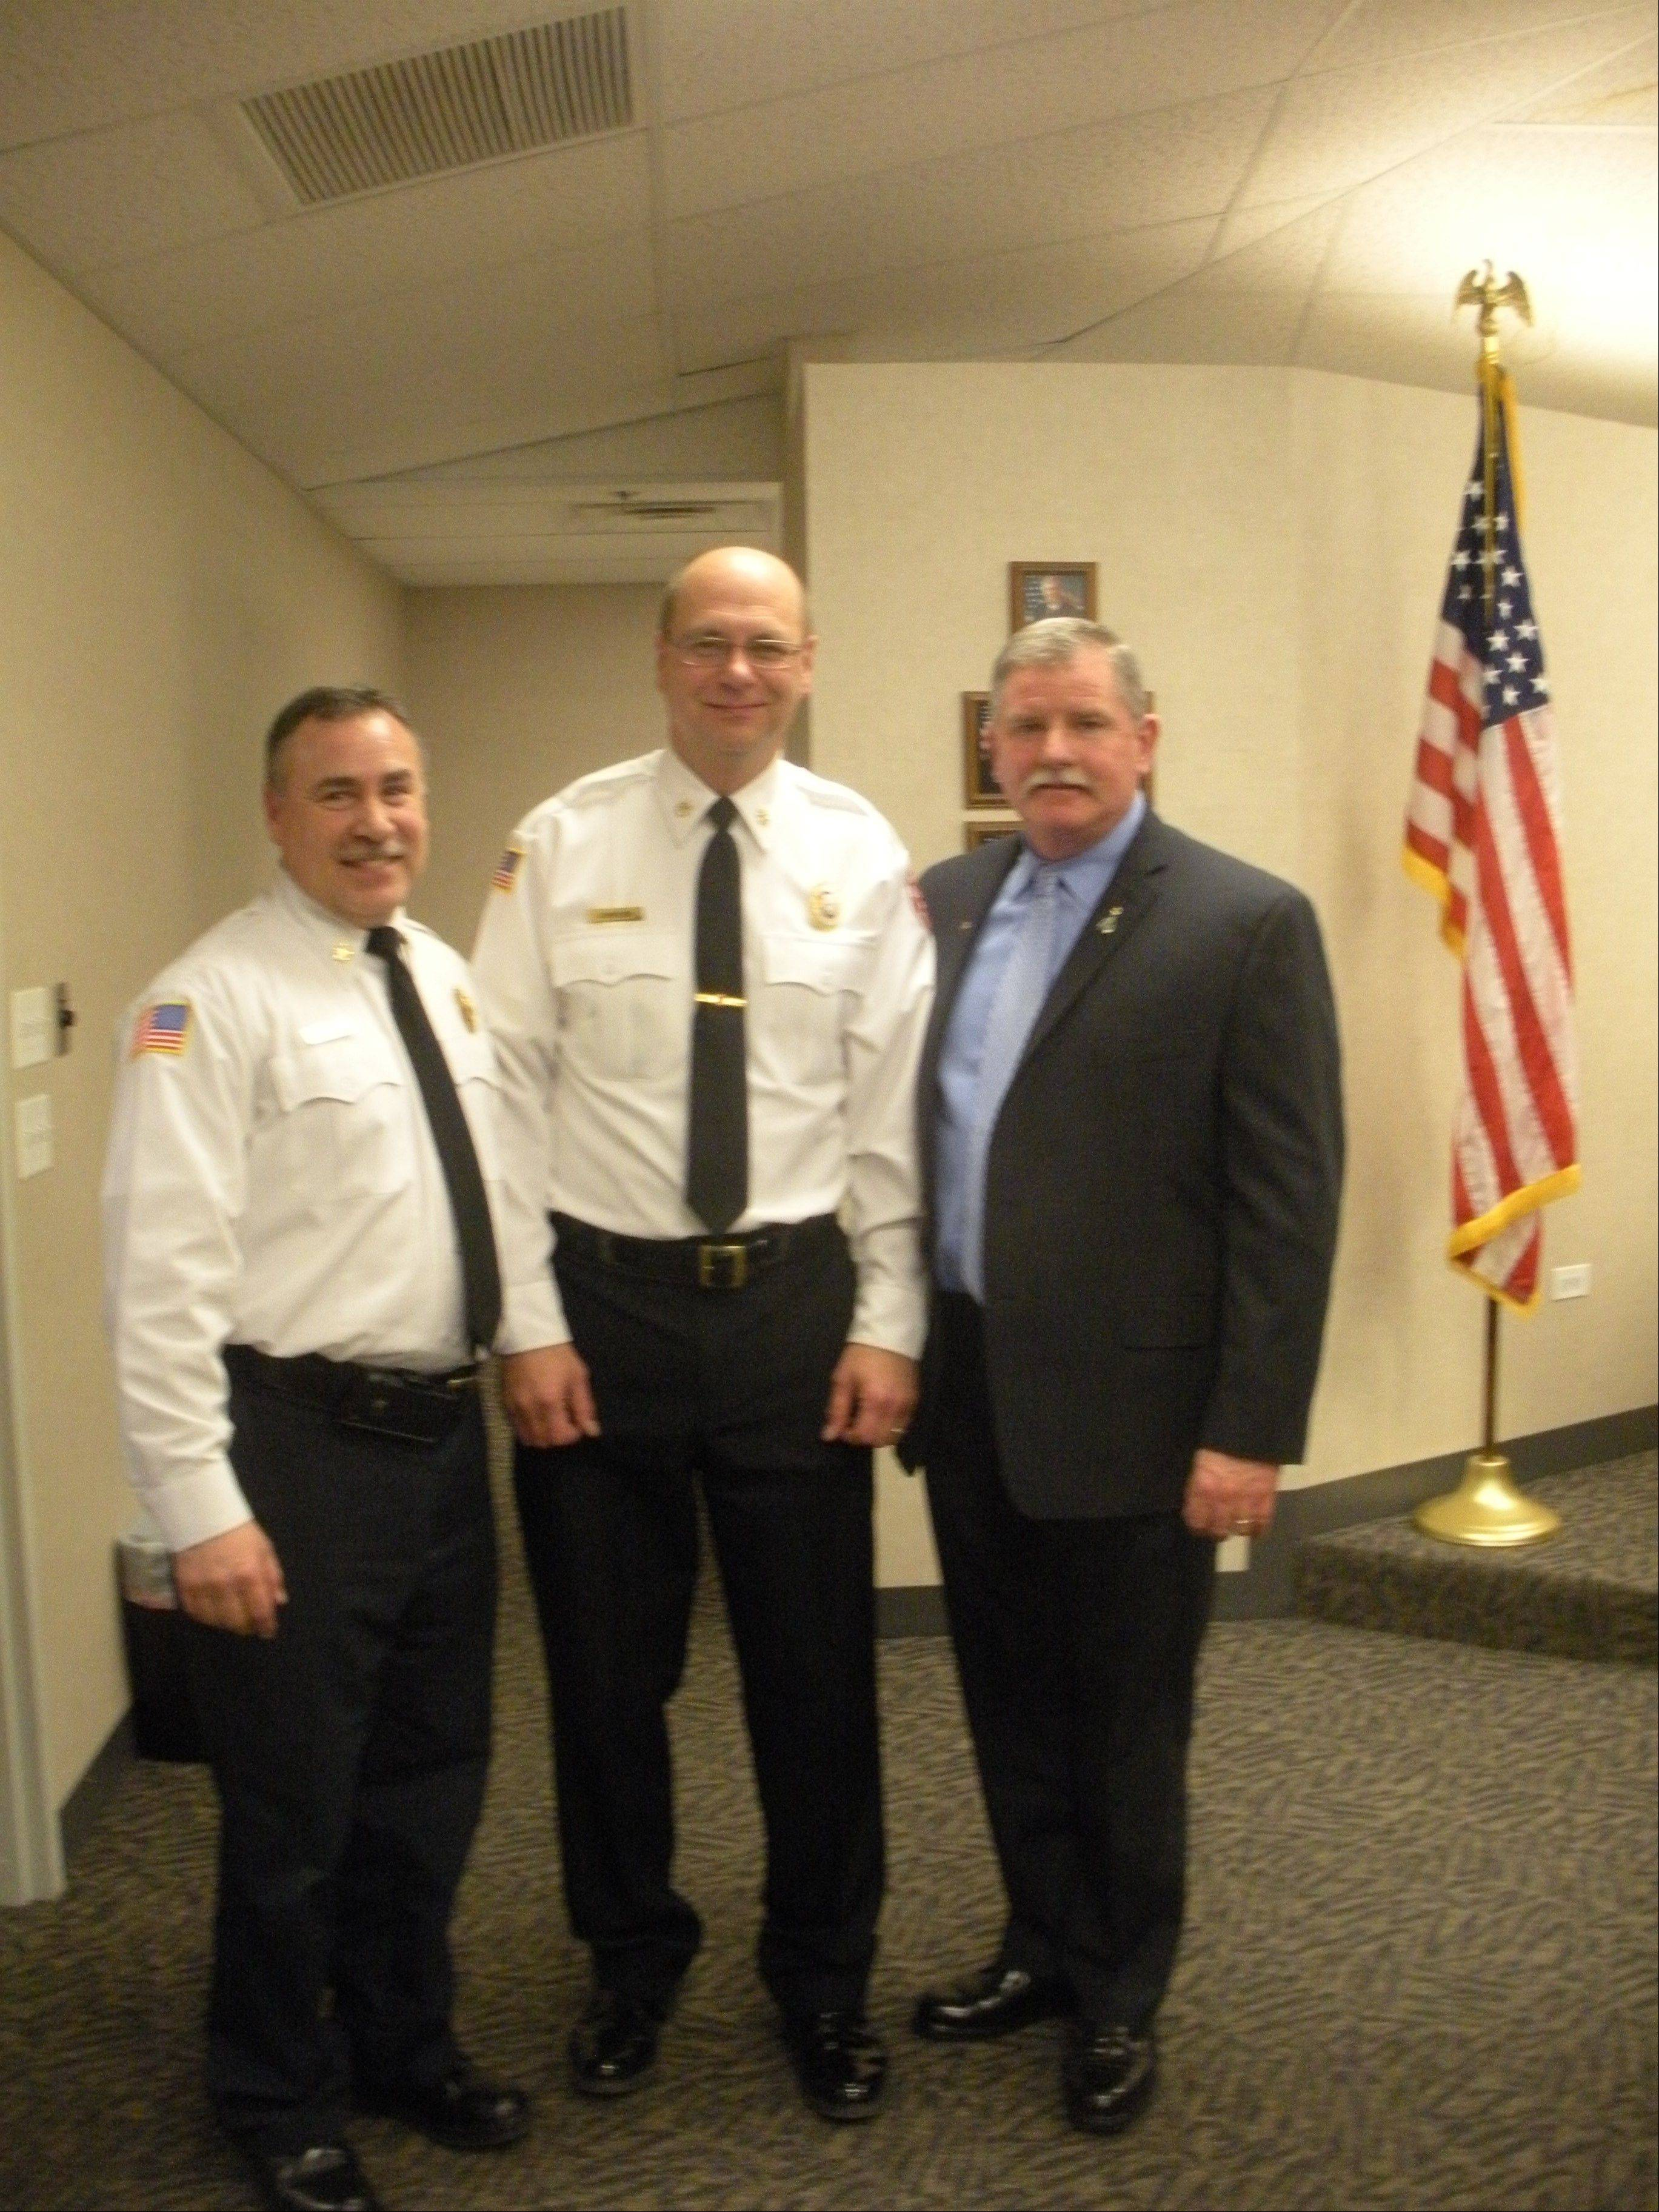 Carol Stream Fire Chief Rick Kolomay, from left, is joined by newly appointed Chief Administrative Officer Perry Johnson and newly appointed Deputy Chief Robert Hoff following the fire district board's approval of a leadership reorganization plan Monday night.